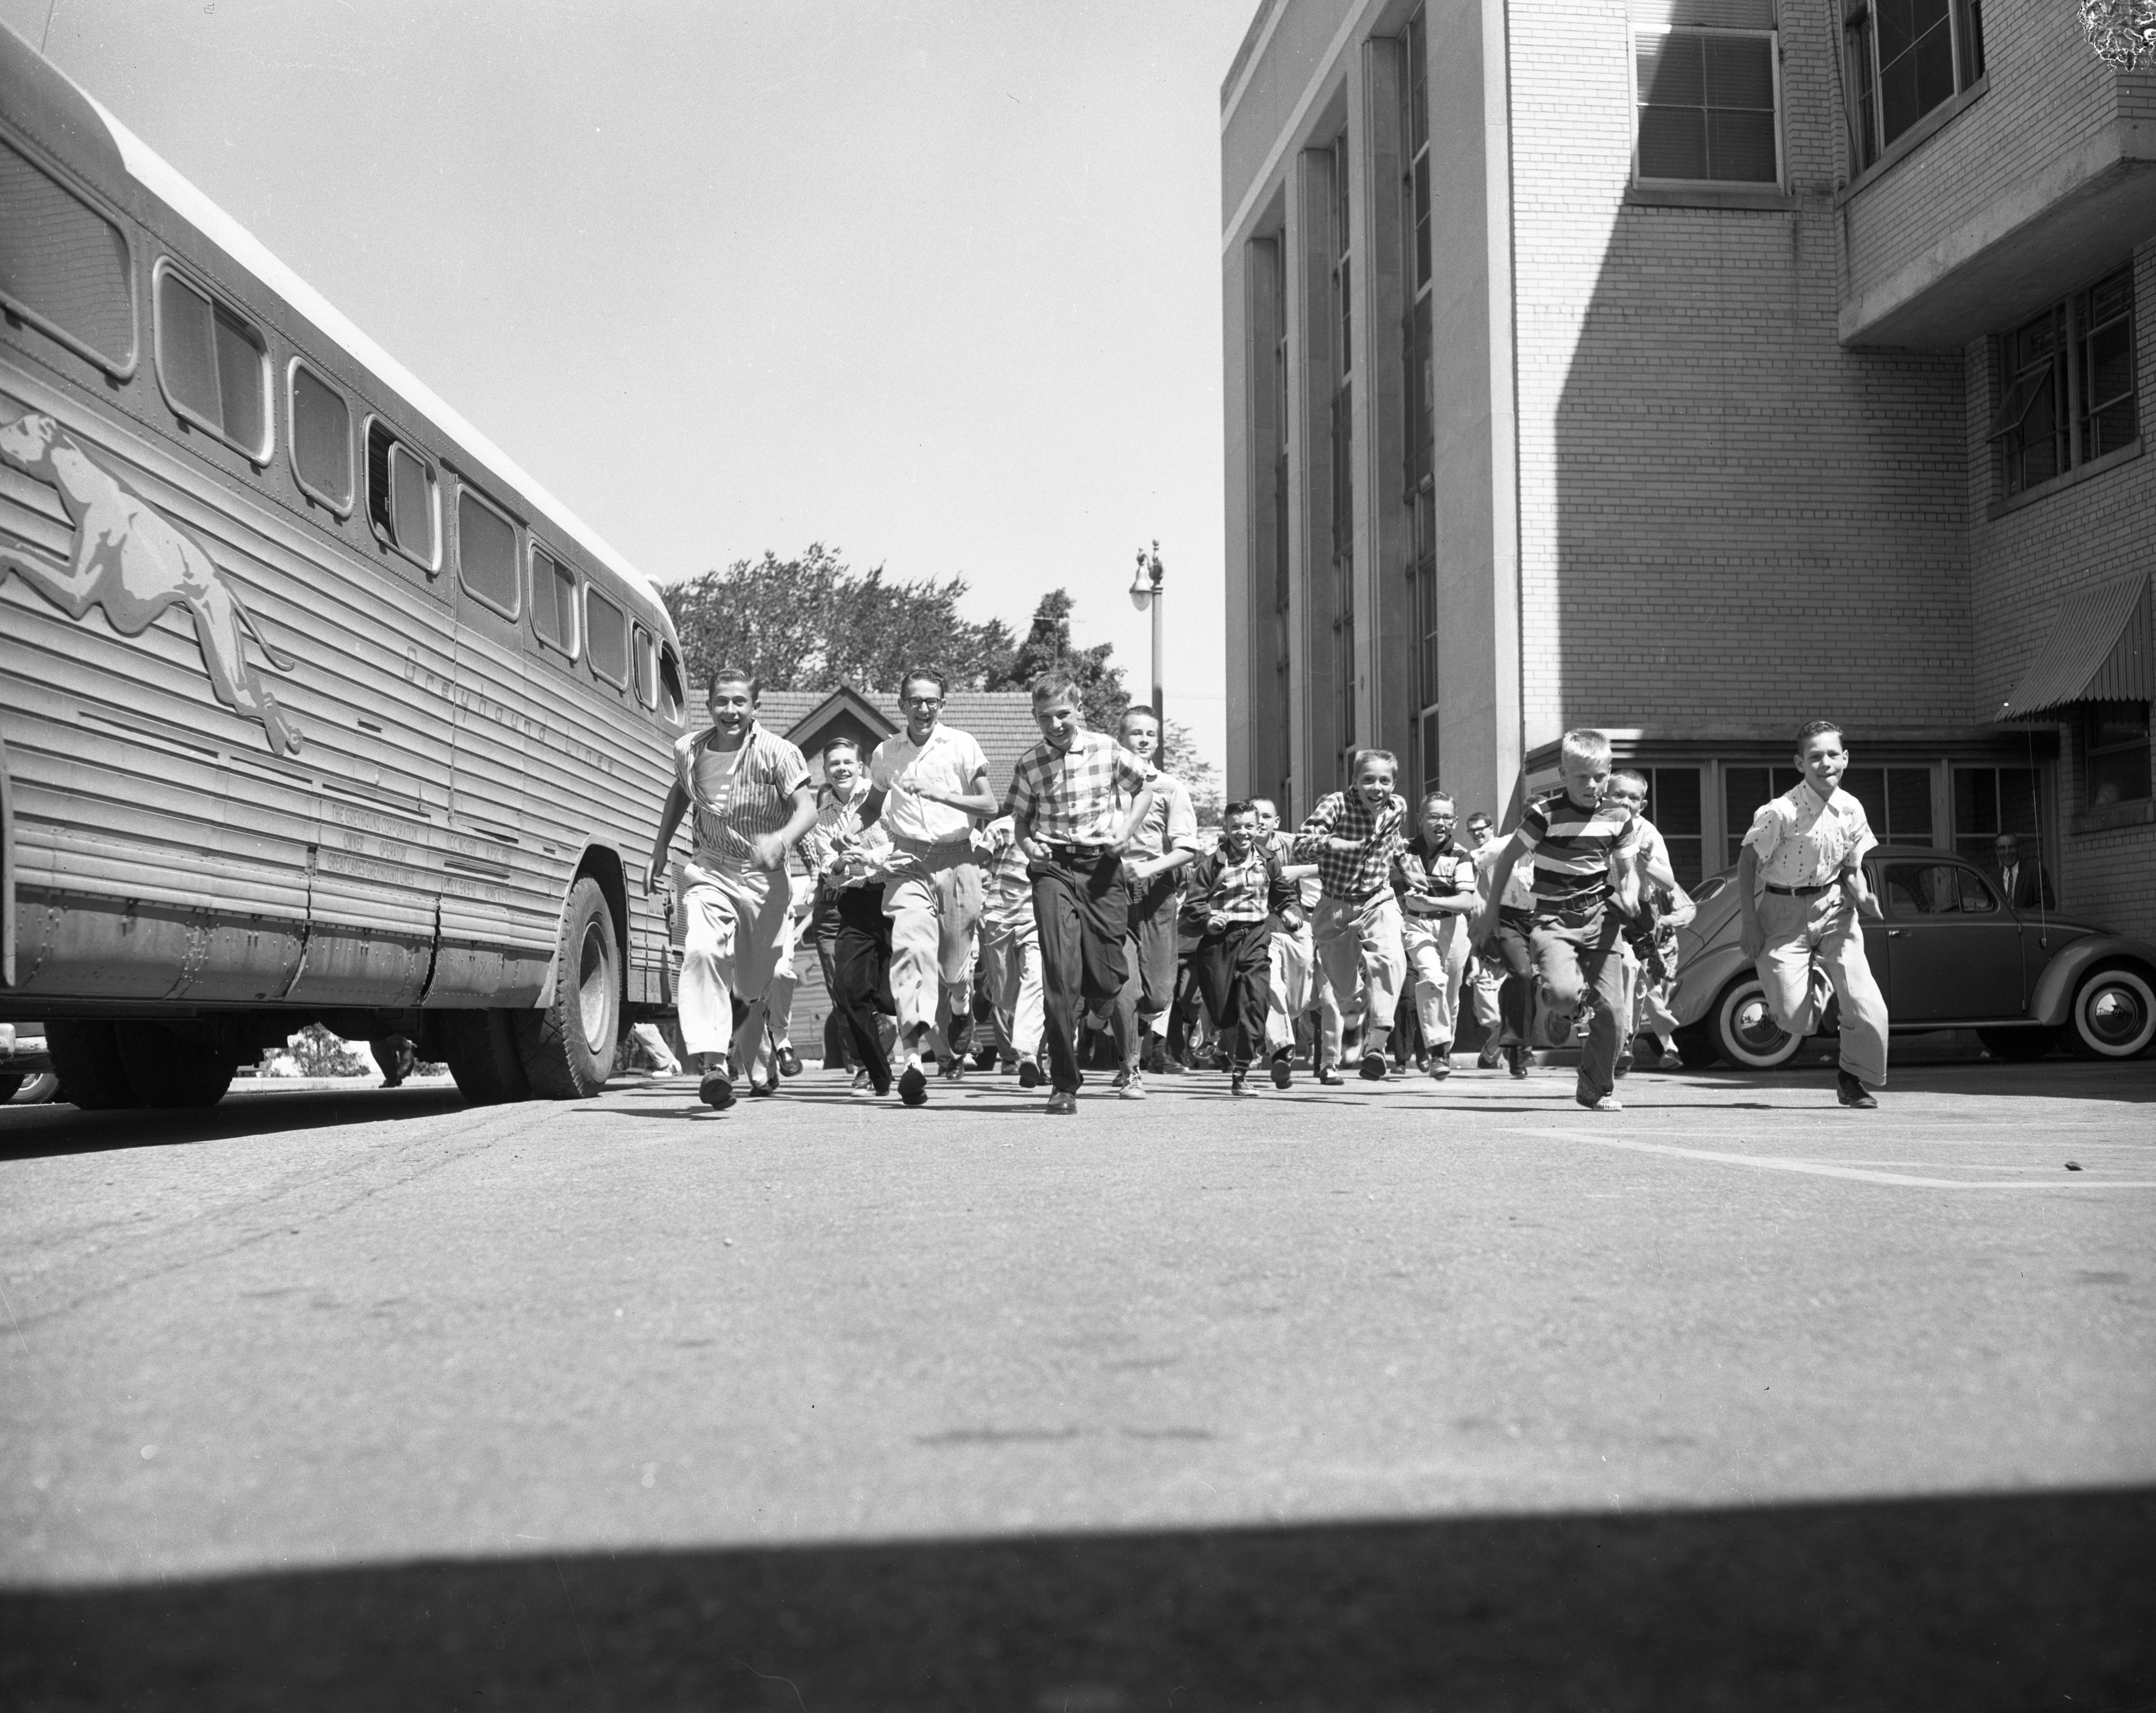 Ann Arbor Newsboys get ready to attend baseball game in Detroit, August 1957 image